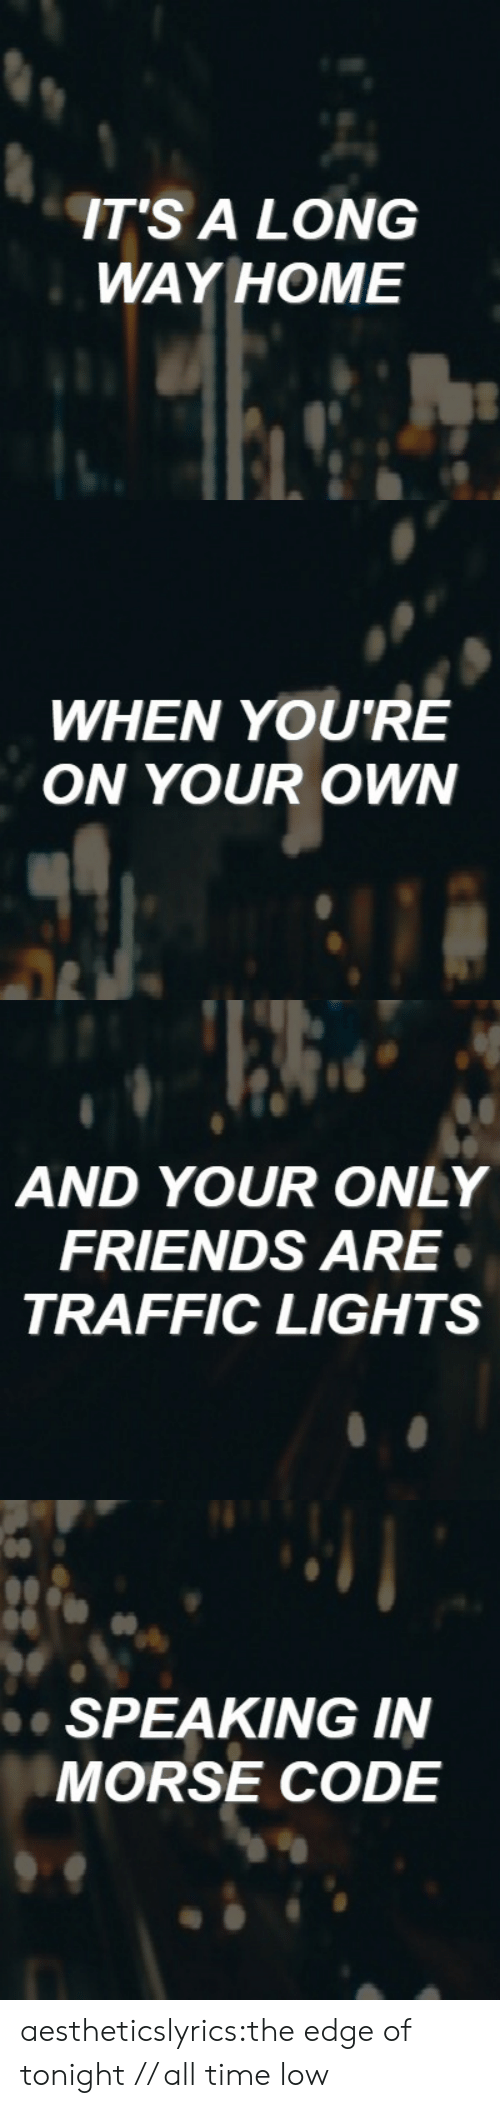 all time low: ITS A LONG  WAY HOME   WHEN YOU'RE  ON YOUR OWN   AND YOUR ONLY  FRIENDS ARE  TRAFFIC LIGHTS   de  SPEAKING IN  MORSE CODE aestheticslyrics:the edge of tonight // all time low